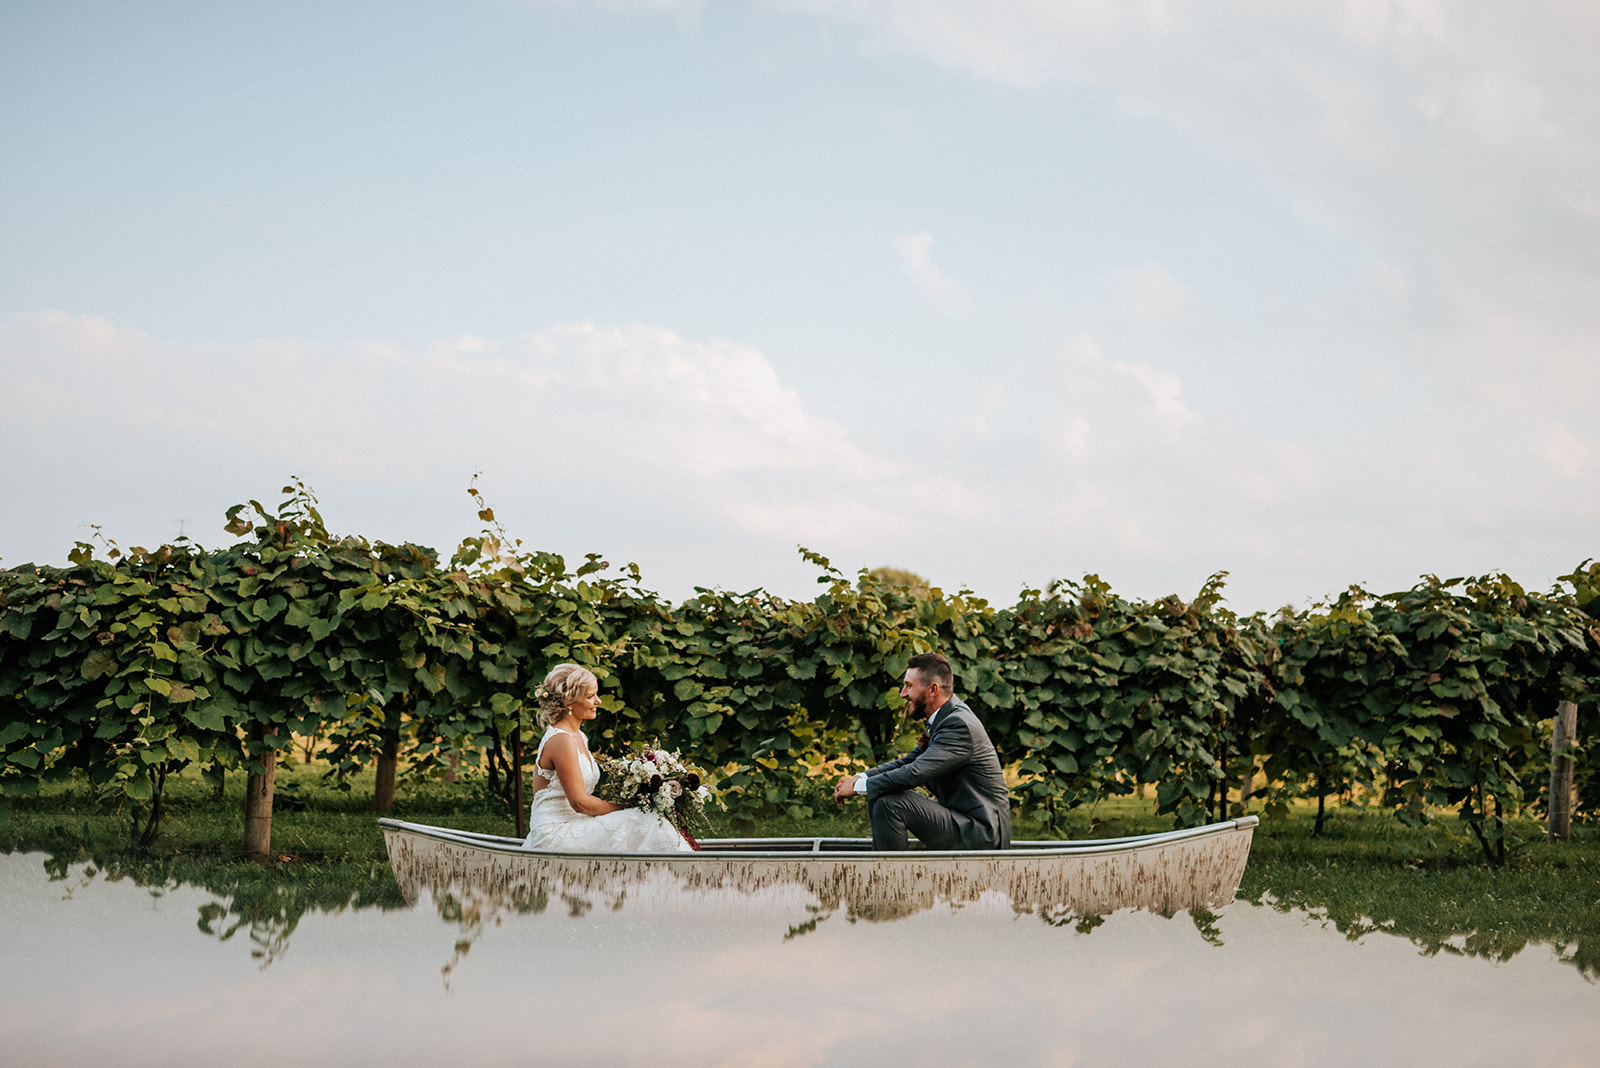 overthevineswisconsinwedding_0945.jpg